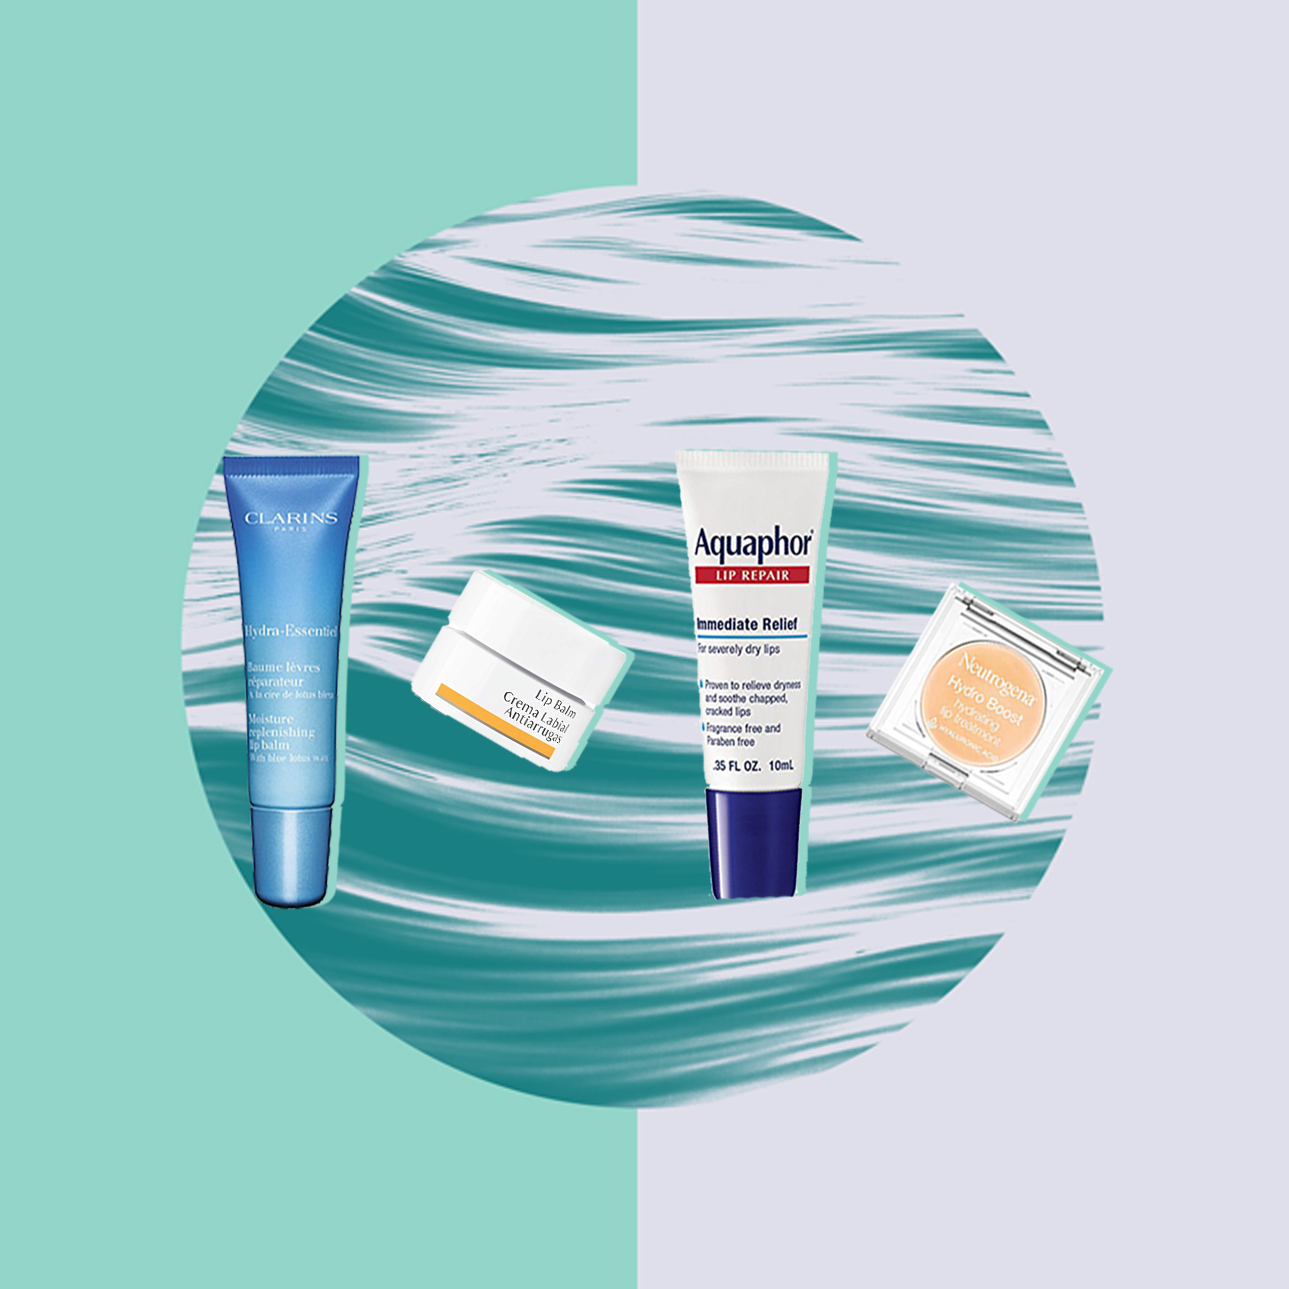 Hydra-Essentiel Moisture Replenishing Lip Balm CLARINS Neutrogena Hydro Boost Lip Treatment   Dr. Hauschka Lip Balm Aquaphor Lip Repair Dry, Chapped Lip Balm product editor health woman moisture cold addiction